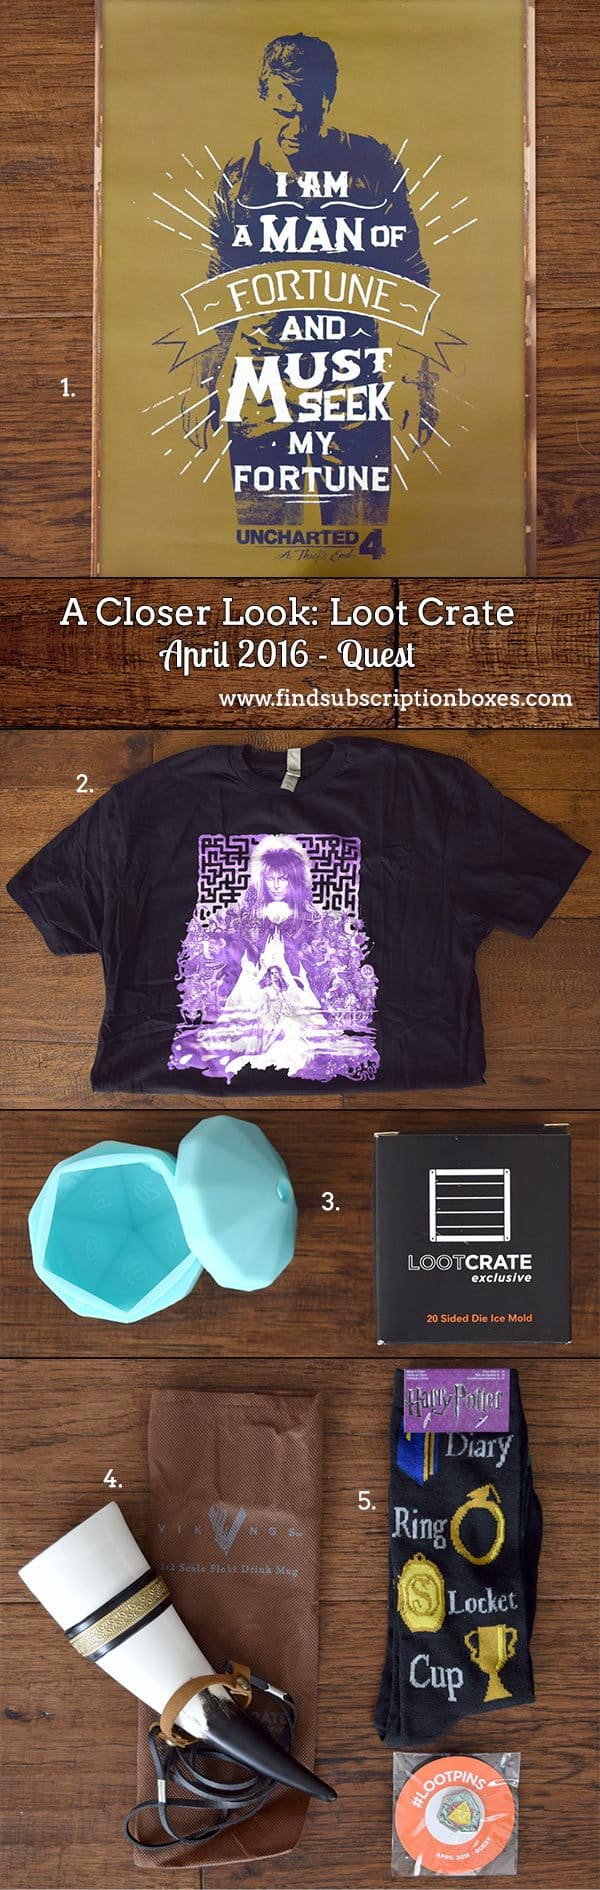 April 2016 Loot Crate Review - Quest Crate - Inside the Box